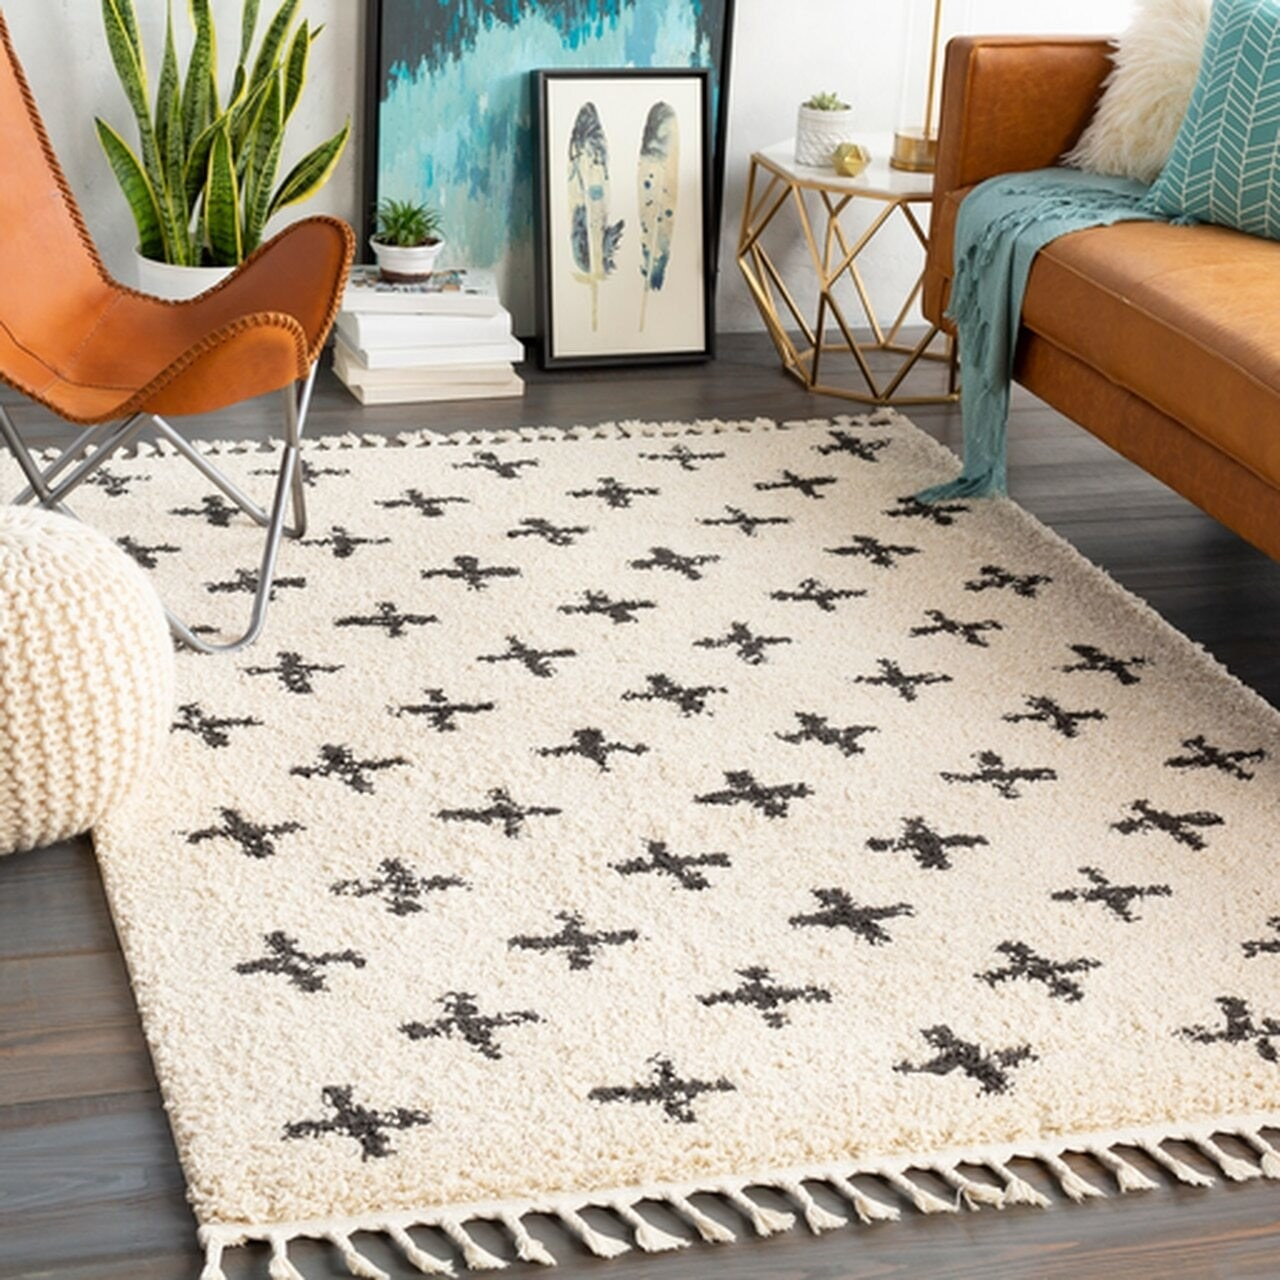 White textured rug with tassels on edges and black plus sign pattern throughout